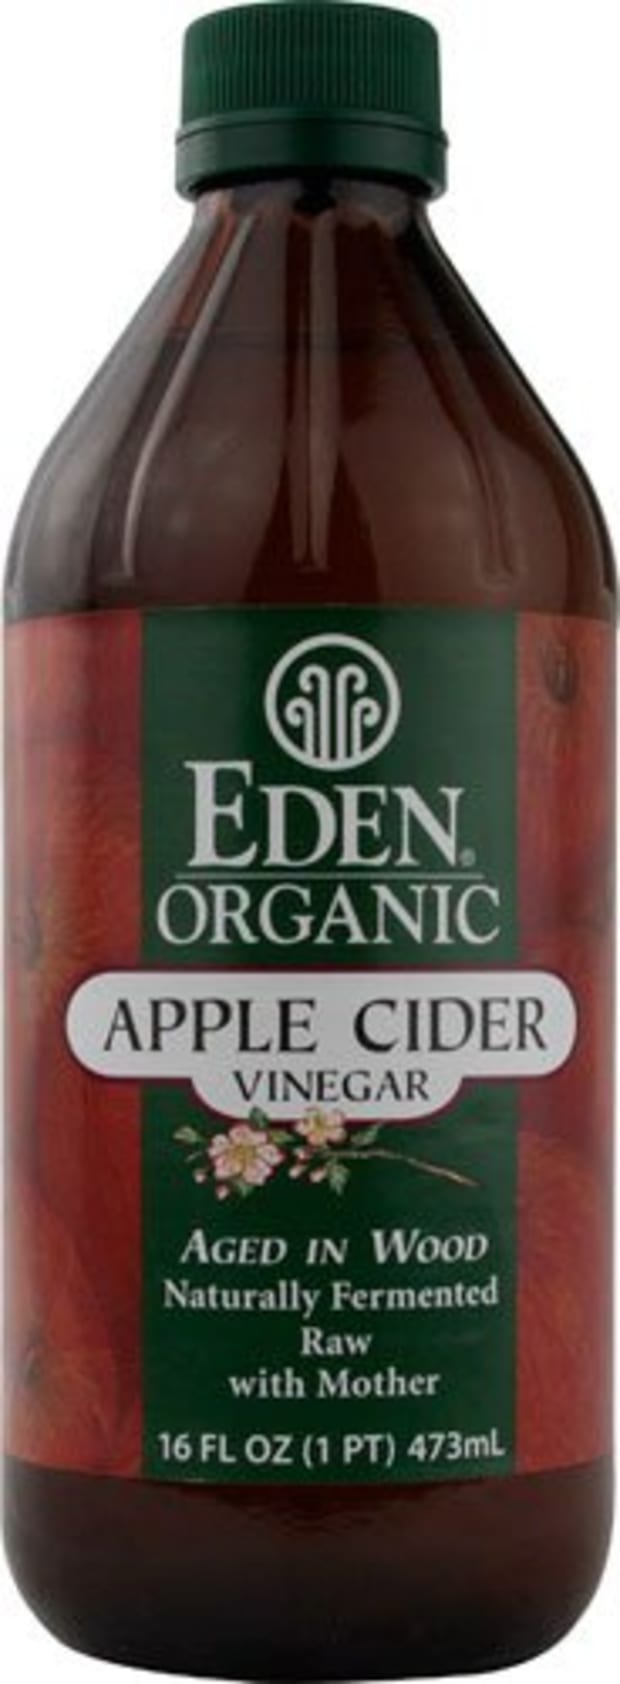 Not All Apple Cider Vinegar is Created Equal - Organic Authority